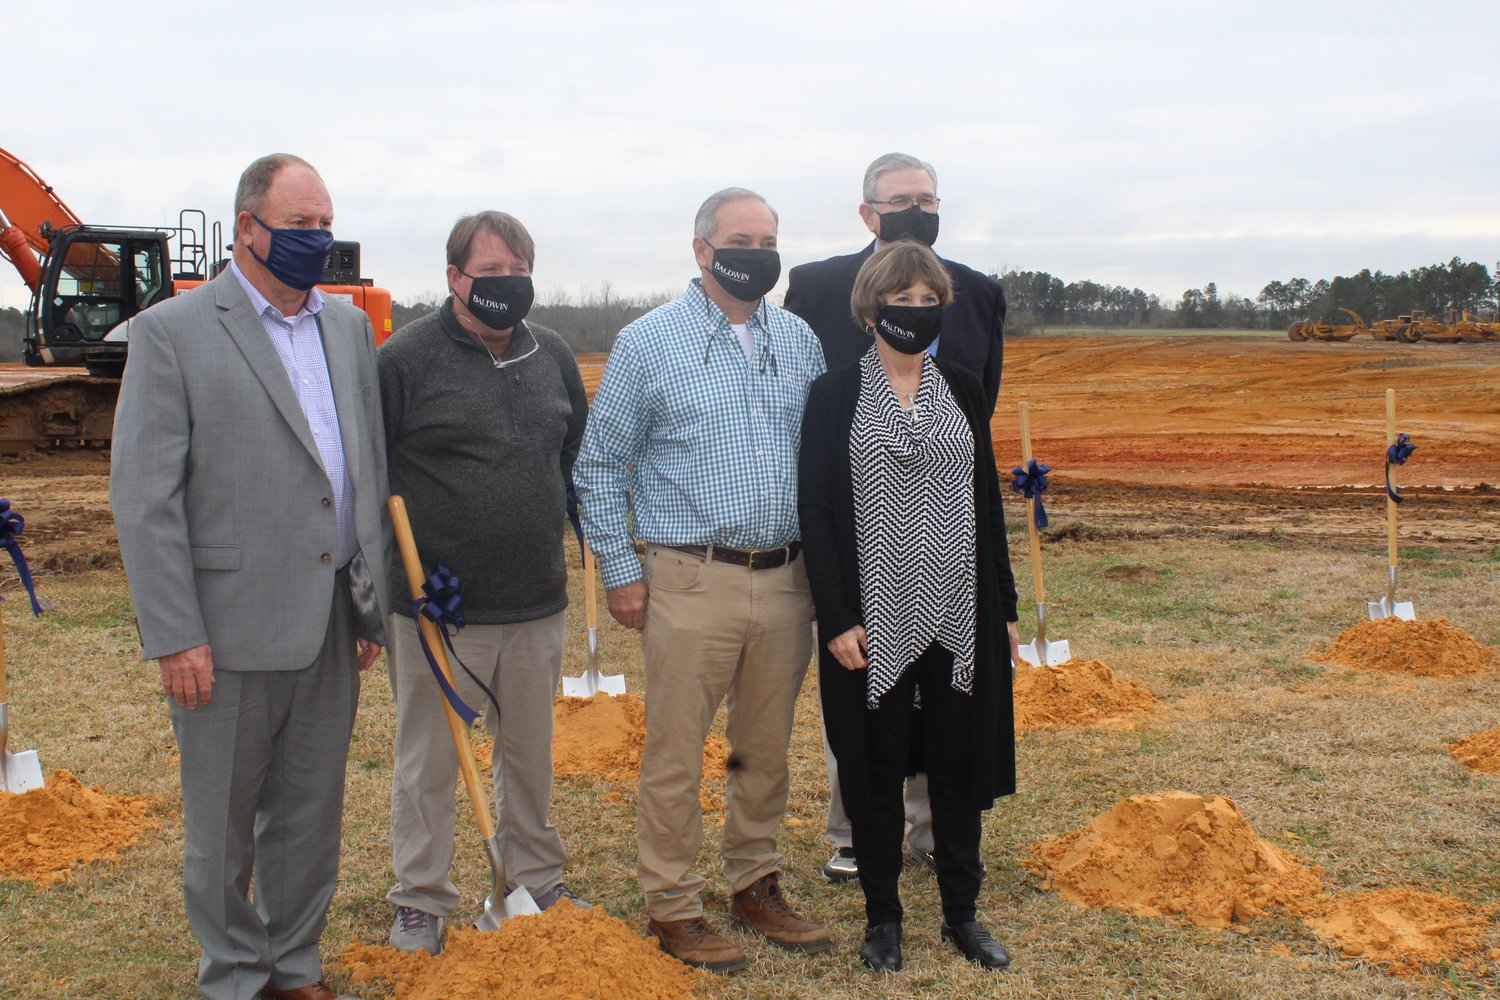 Loxley Mayor Richard Teal, far left, is joined by council members, from left, Lee Wilson, Mayor Pro Tem Kasey Childress, Katherine Breeden and Jeff Knight following the ALDI groundbreaking ceremony on Feb. 10. Not pictured is Council member Chris McCall.